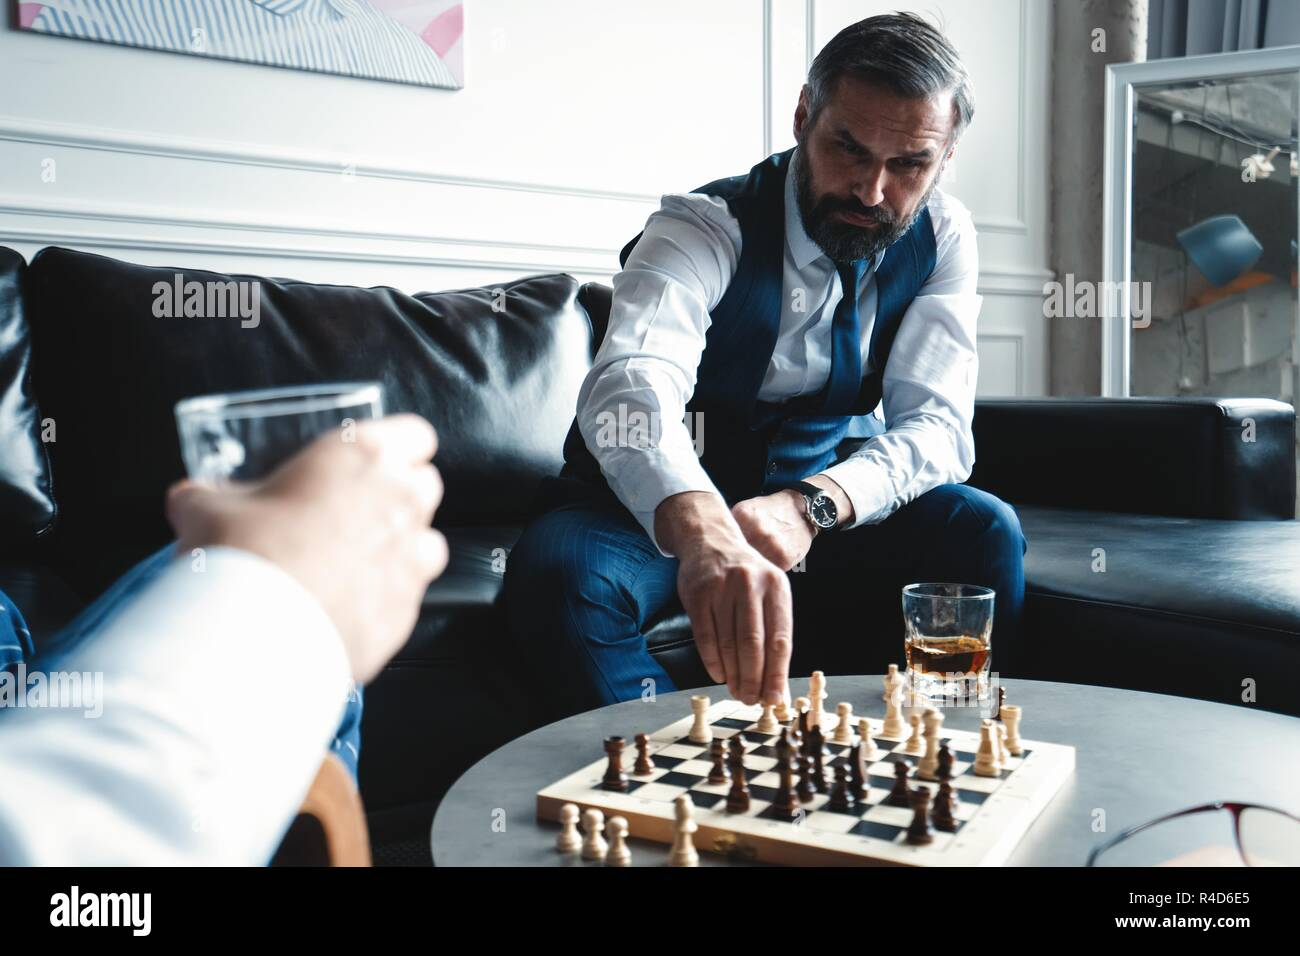 Your move! Two young handsome men in full suits playing chess and smiling while sitting indoors - Stock Image